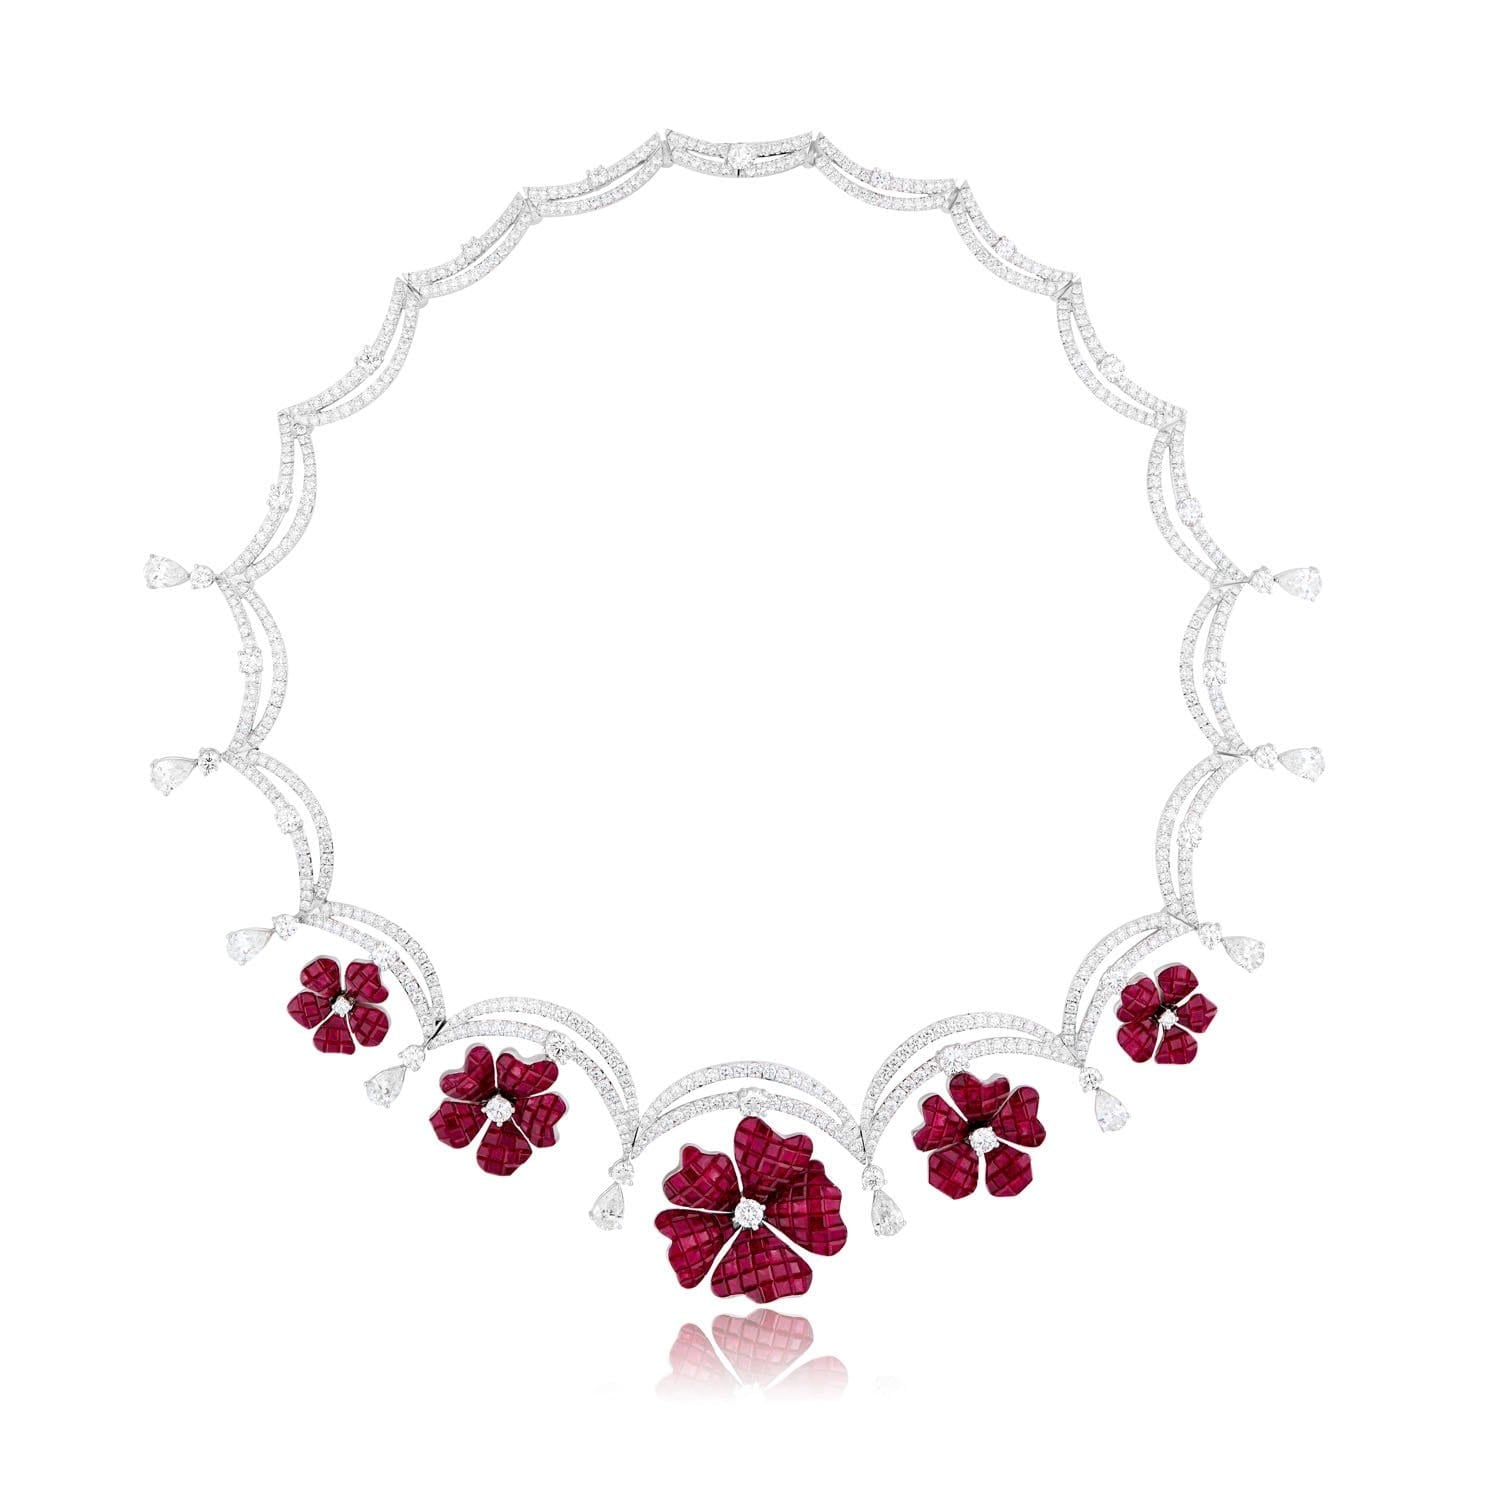 FLORAL Necklace - STENZHORN JEWELLERY